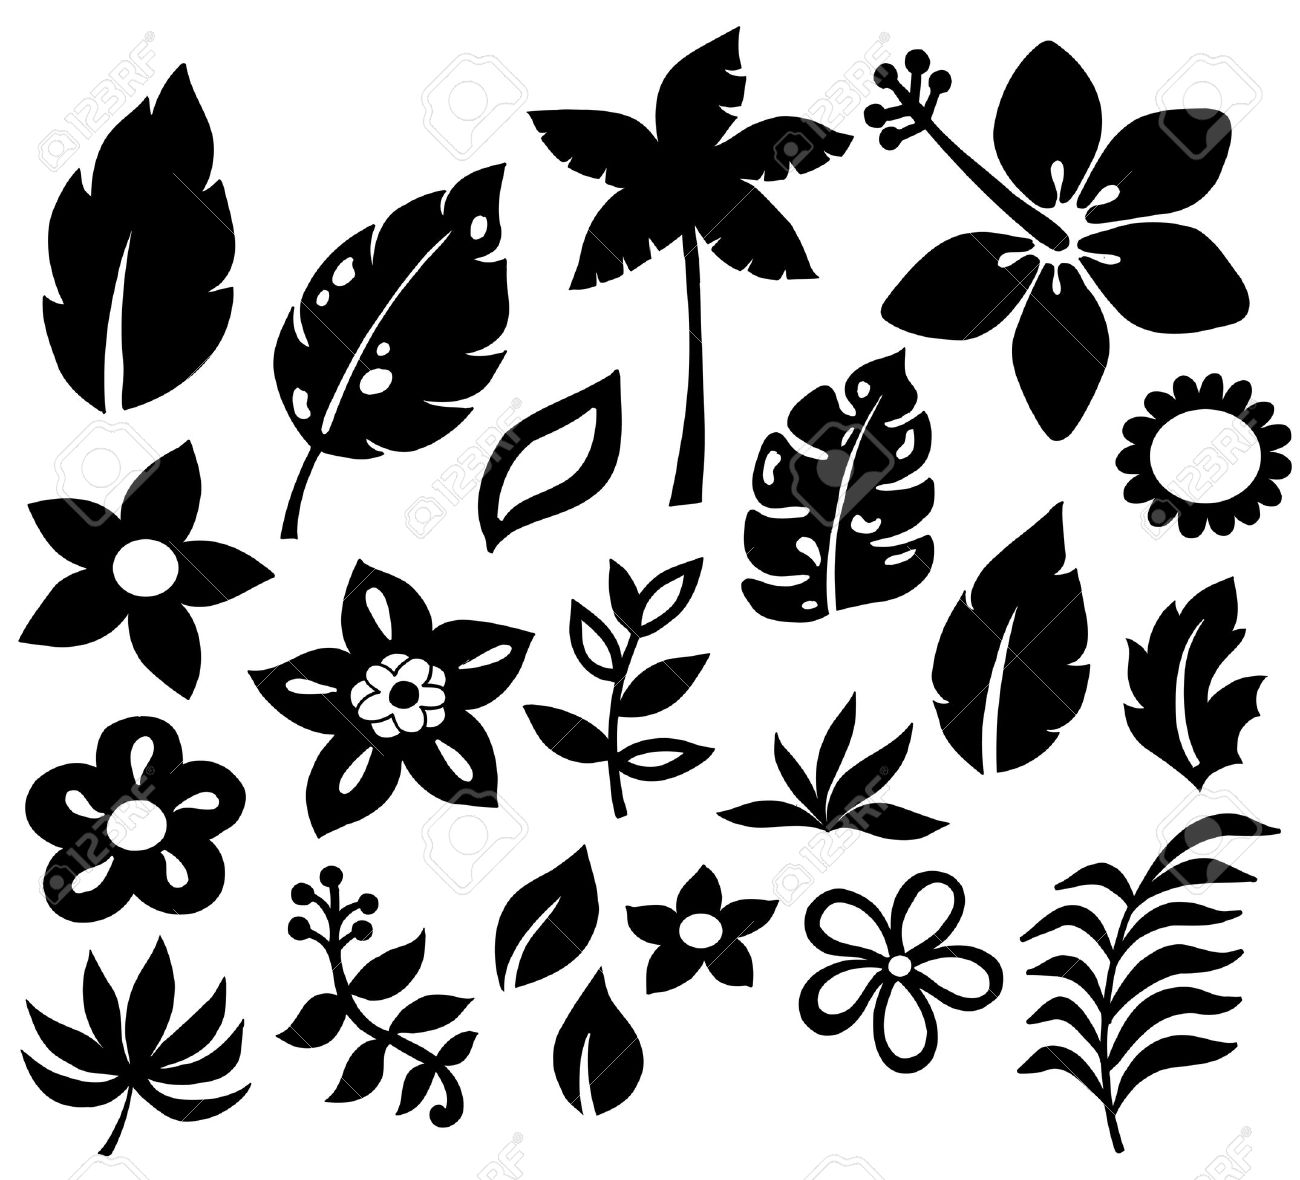 Tropical Flower And Leaf Vector Silhouettes Stock